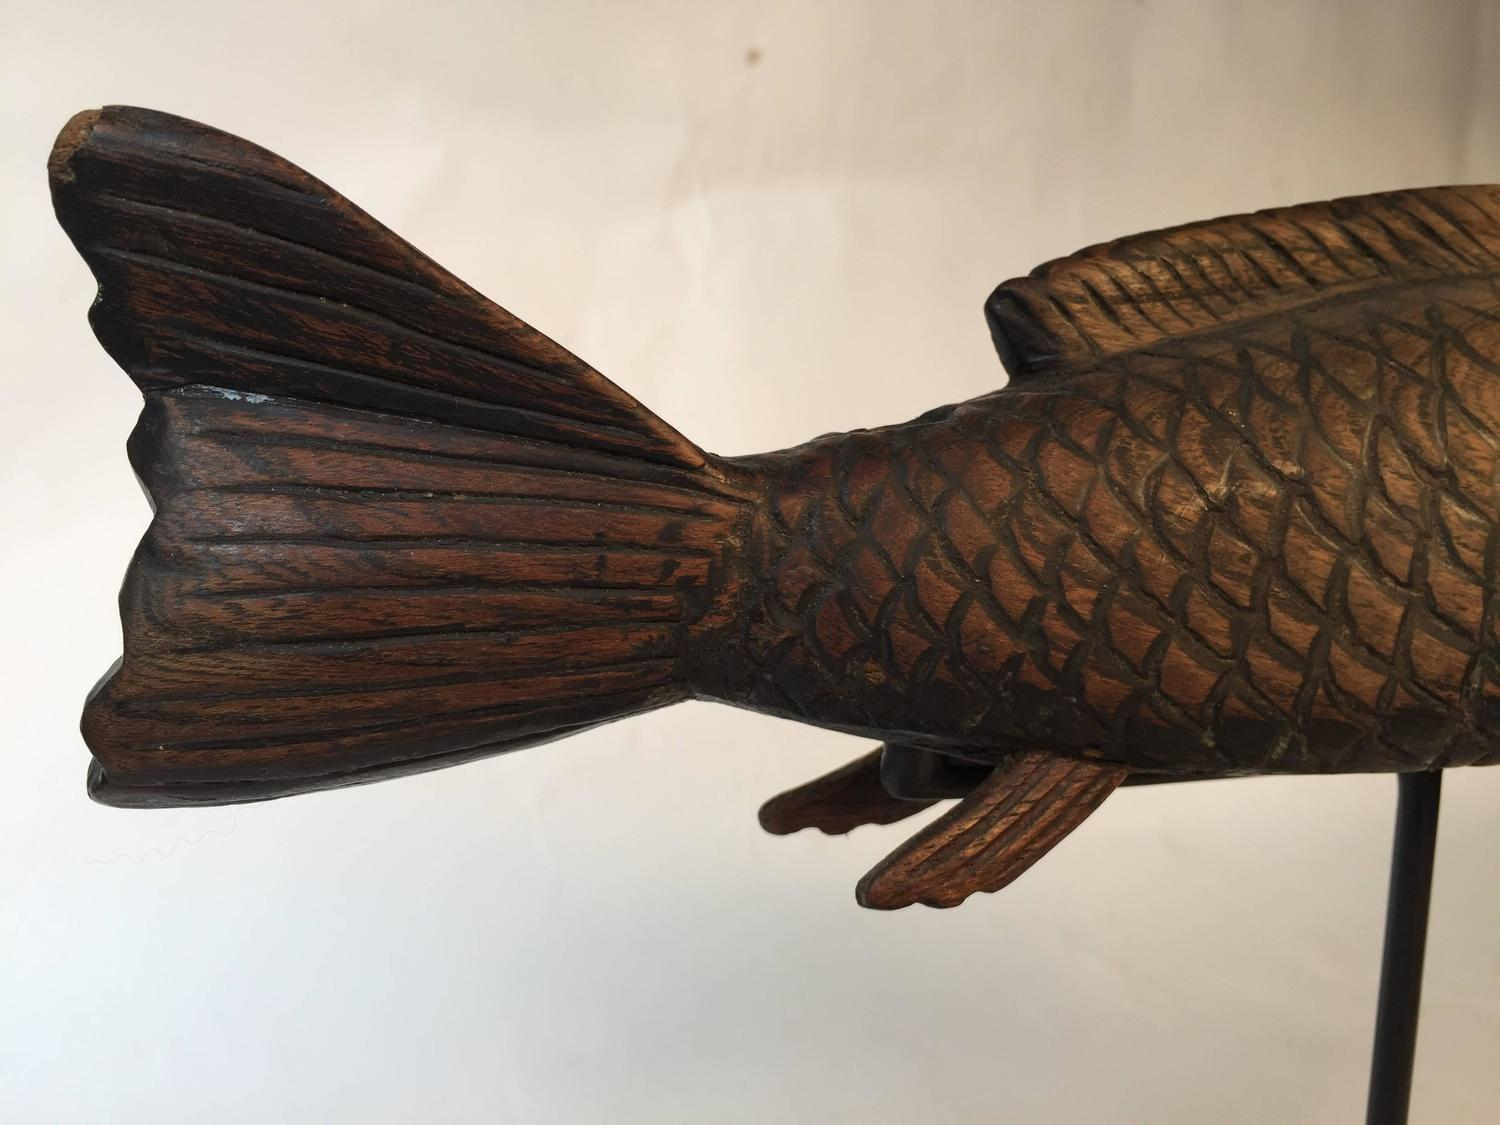 Japanese hand carved wood koi good fortune fish sculpture